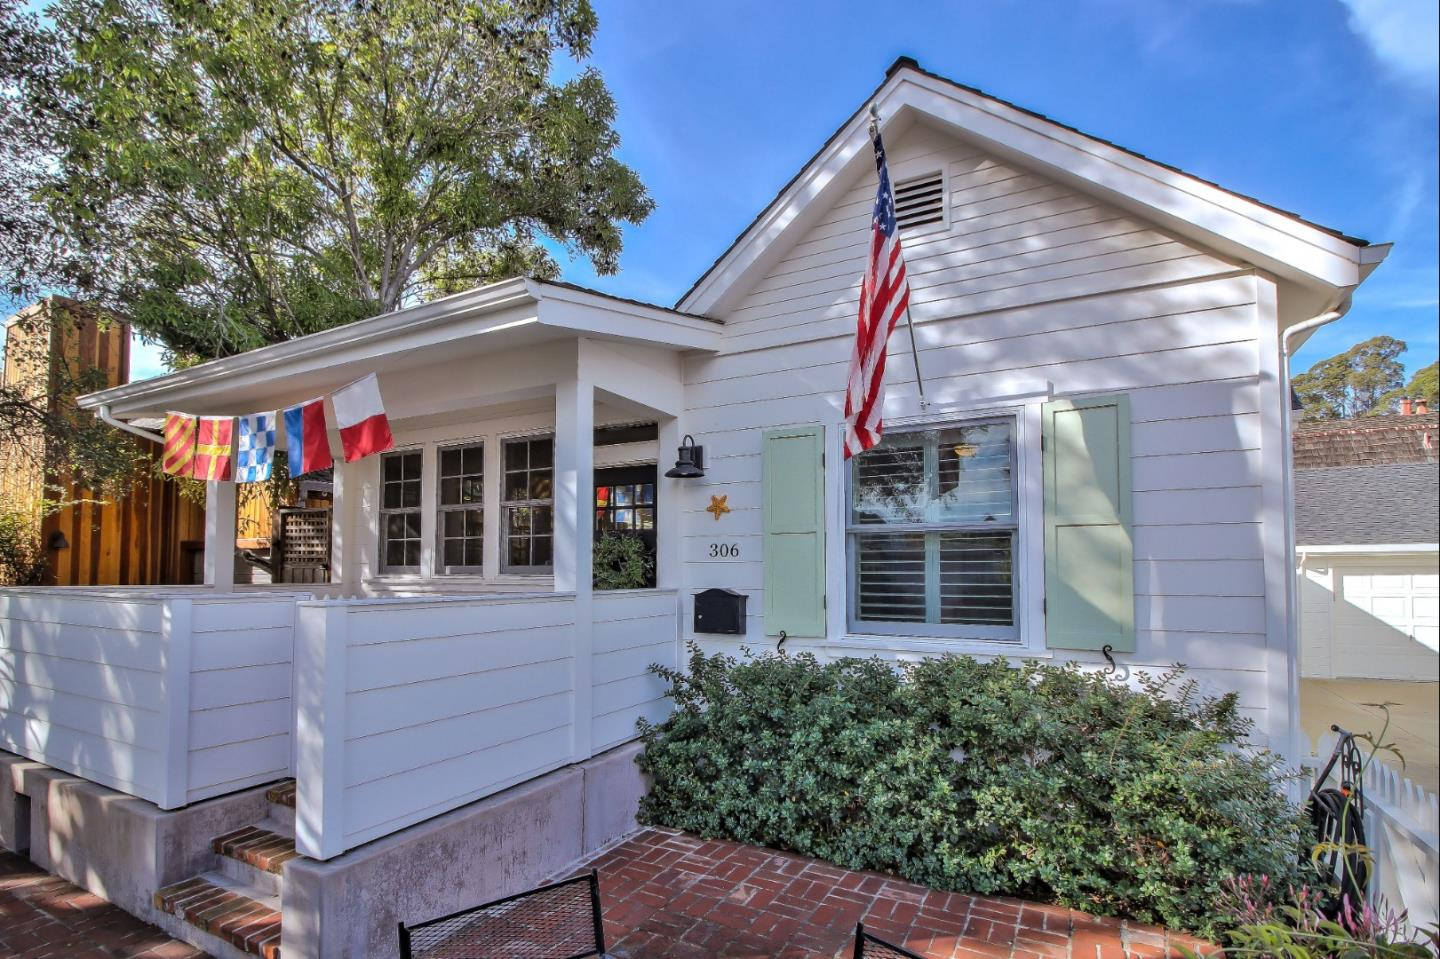 WOW!! A remodeled and expanded beach cottage, designed by Matson and Britton, on Capitola's coveted Depot Hill? You might need to pinch yourself, as this is a dream to many! Welcoming open floor plan draws you in and invites you to enjoy its many cozy spaces to gather and relax. Soaring ceilings with high punch out windows, provide lots of light and privacy. The home features custom cabinetry with built in storage and TV cabinet, wood floors, farm sink, Milgard windows, Calcutta Marble and Wolf and Sub Zero appliances. Whimsical design touches of wainscoting and corrugated metal are fresh and chic. Under counter washer/ dryer is smart European style. Upgraded electrical and plumbing, newer furnace and on-demand hot water heater. Charming porch for lazy mornings and afternoons enjoying your favorite beverage. All this AND a perfect location! Short walking distance to Capitola Village and Beach, restaurants, shopping and awesome events. Be a part of this exceptional Capitola community!